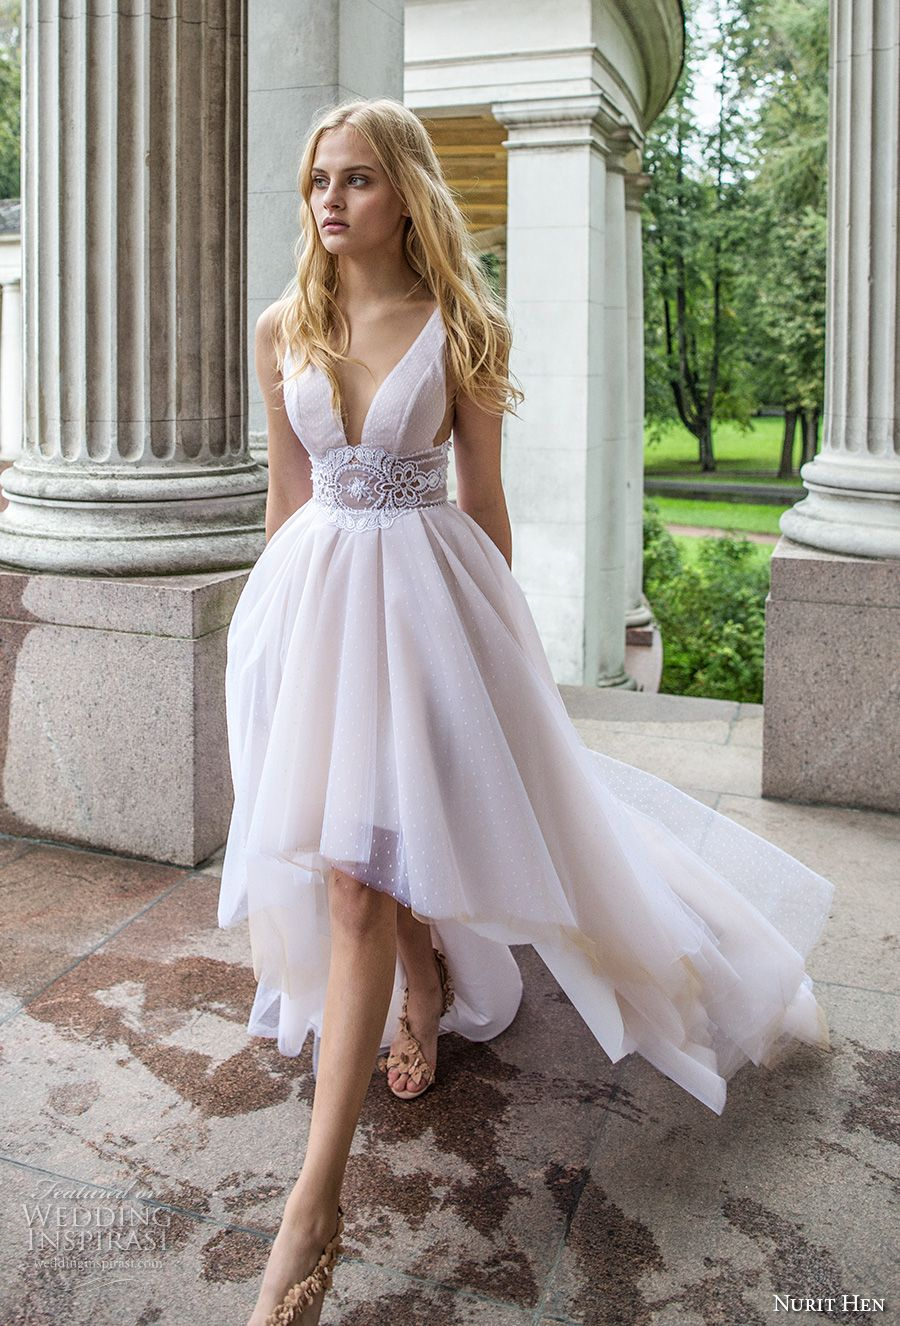 Nurit hen ivory and white wedding dresses dresses casuals